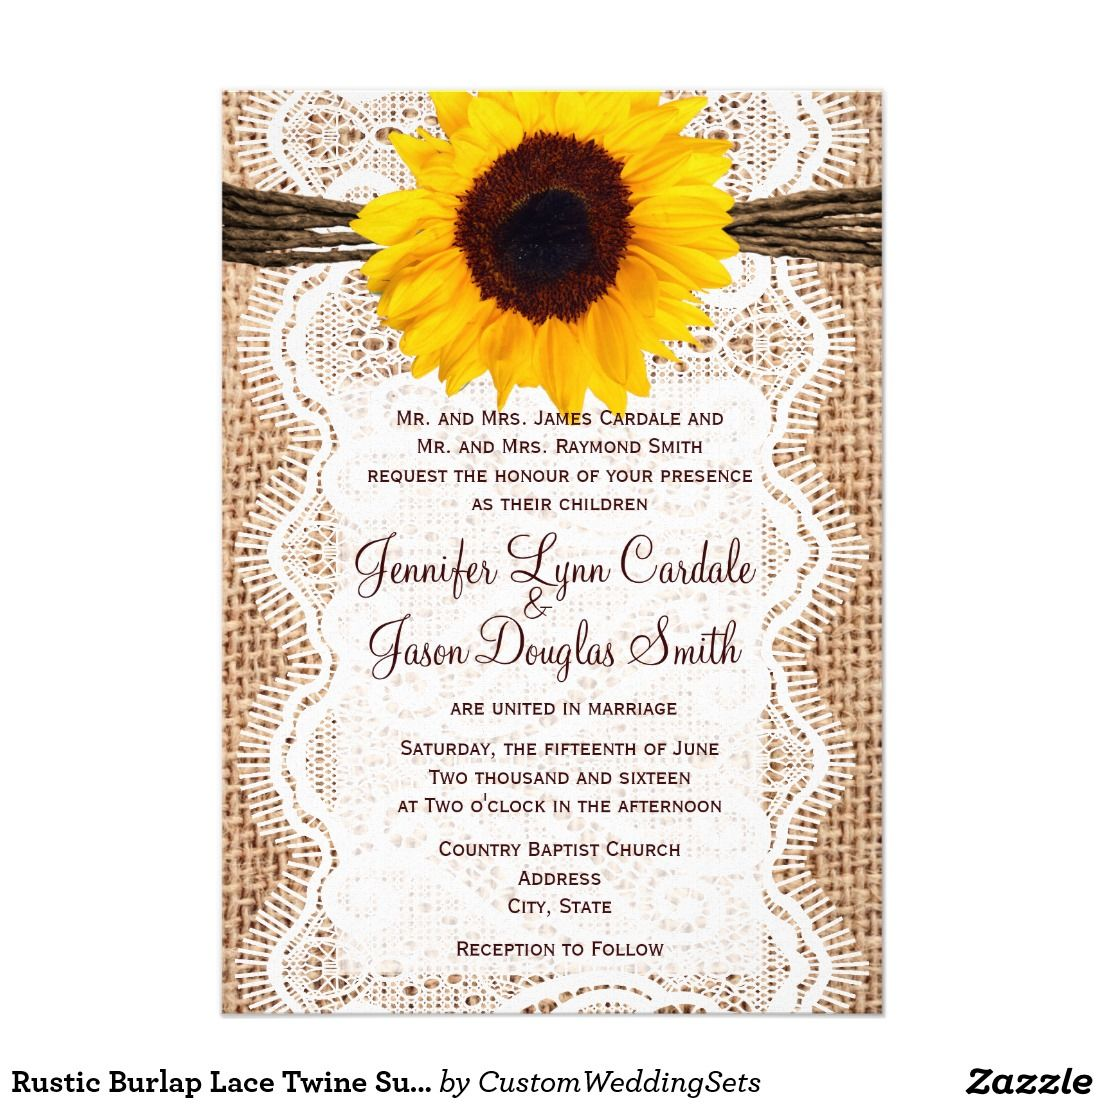 Rustic Burlap Lace Twine Sunflower Wedding Invites Burlap Lace